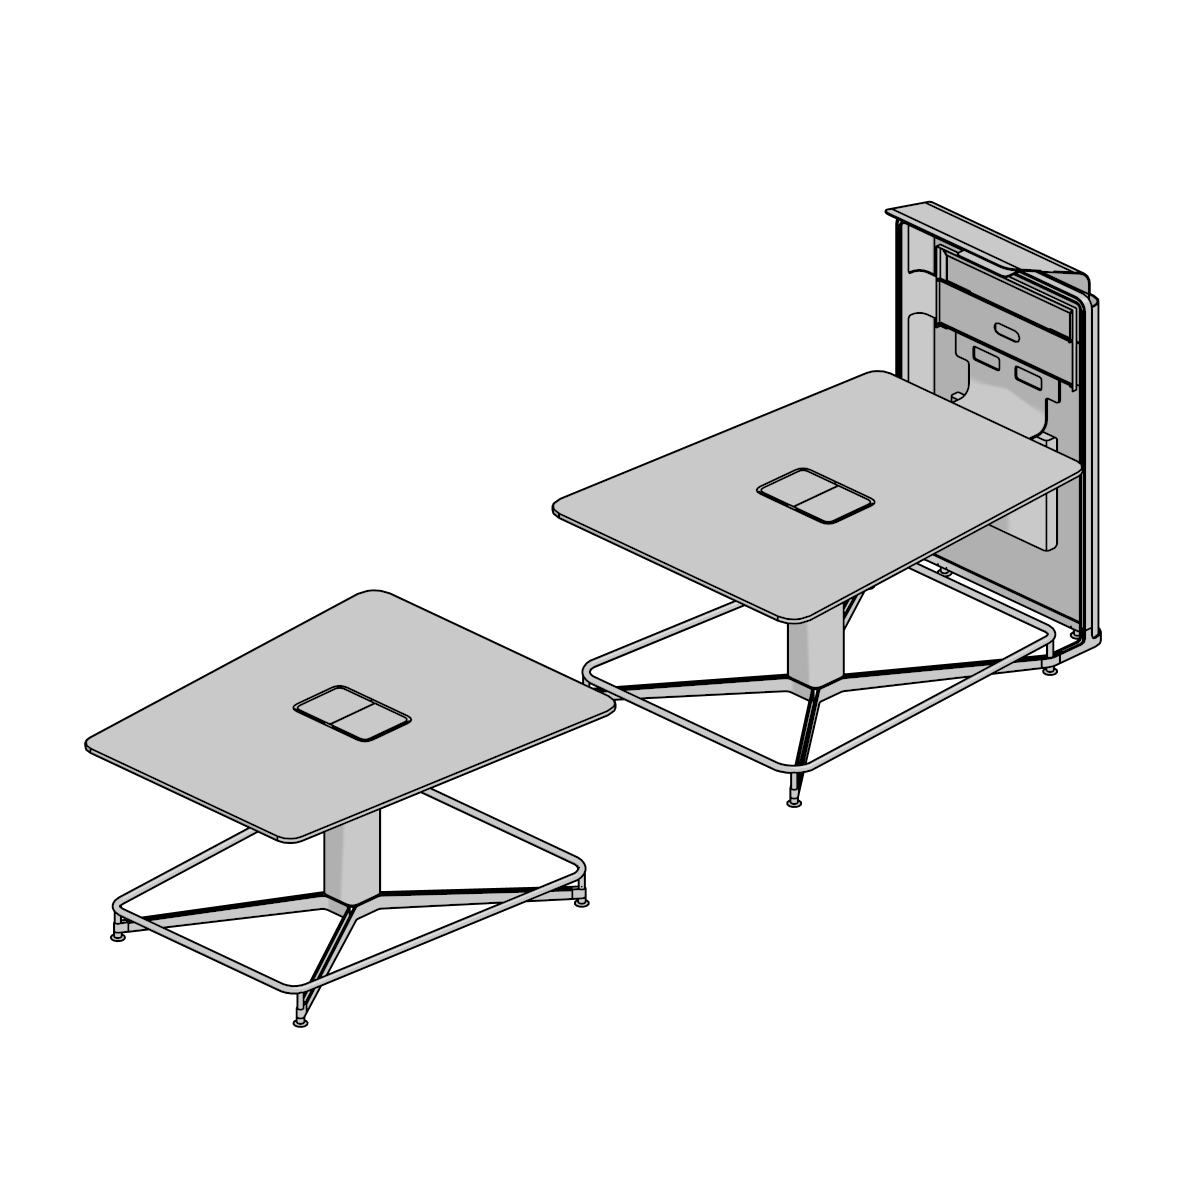 3D Models Archive - Steelcase